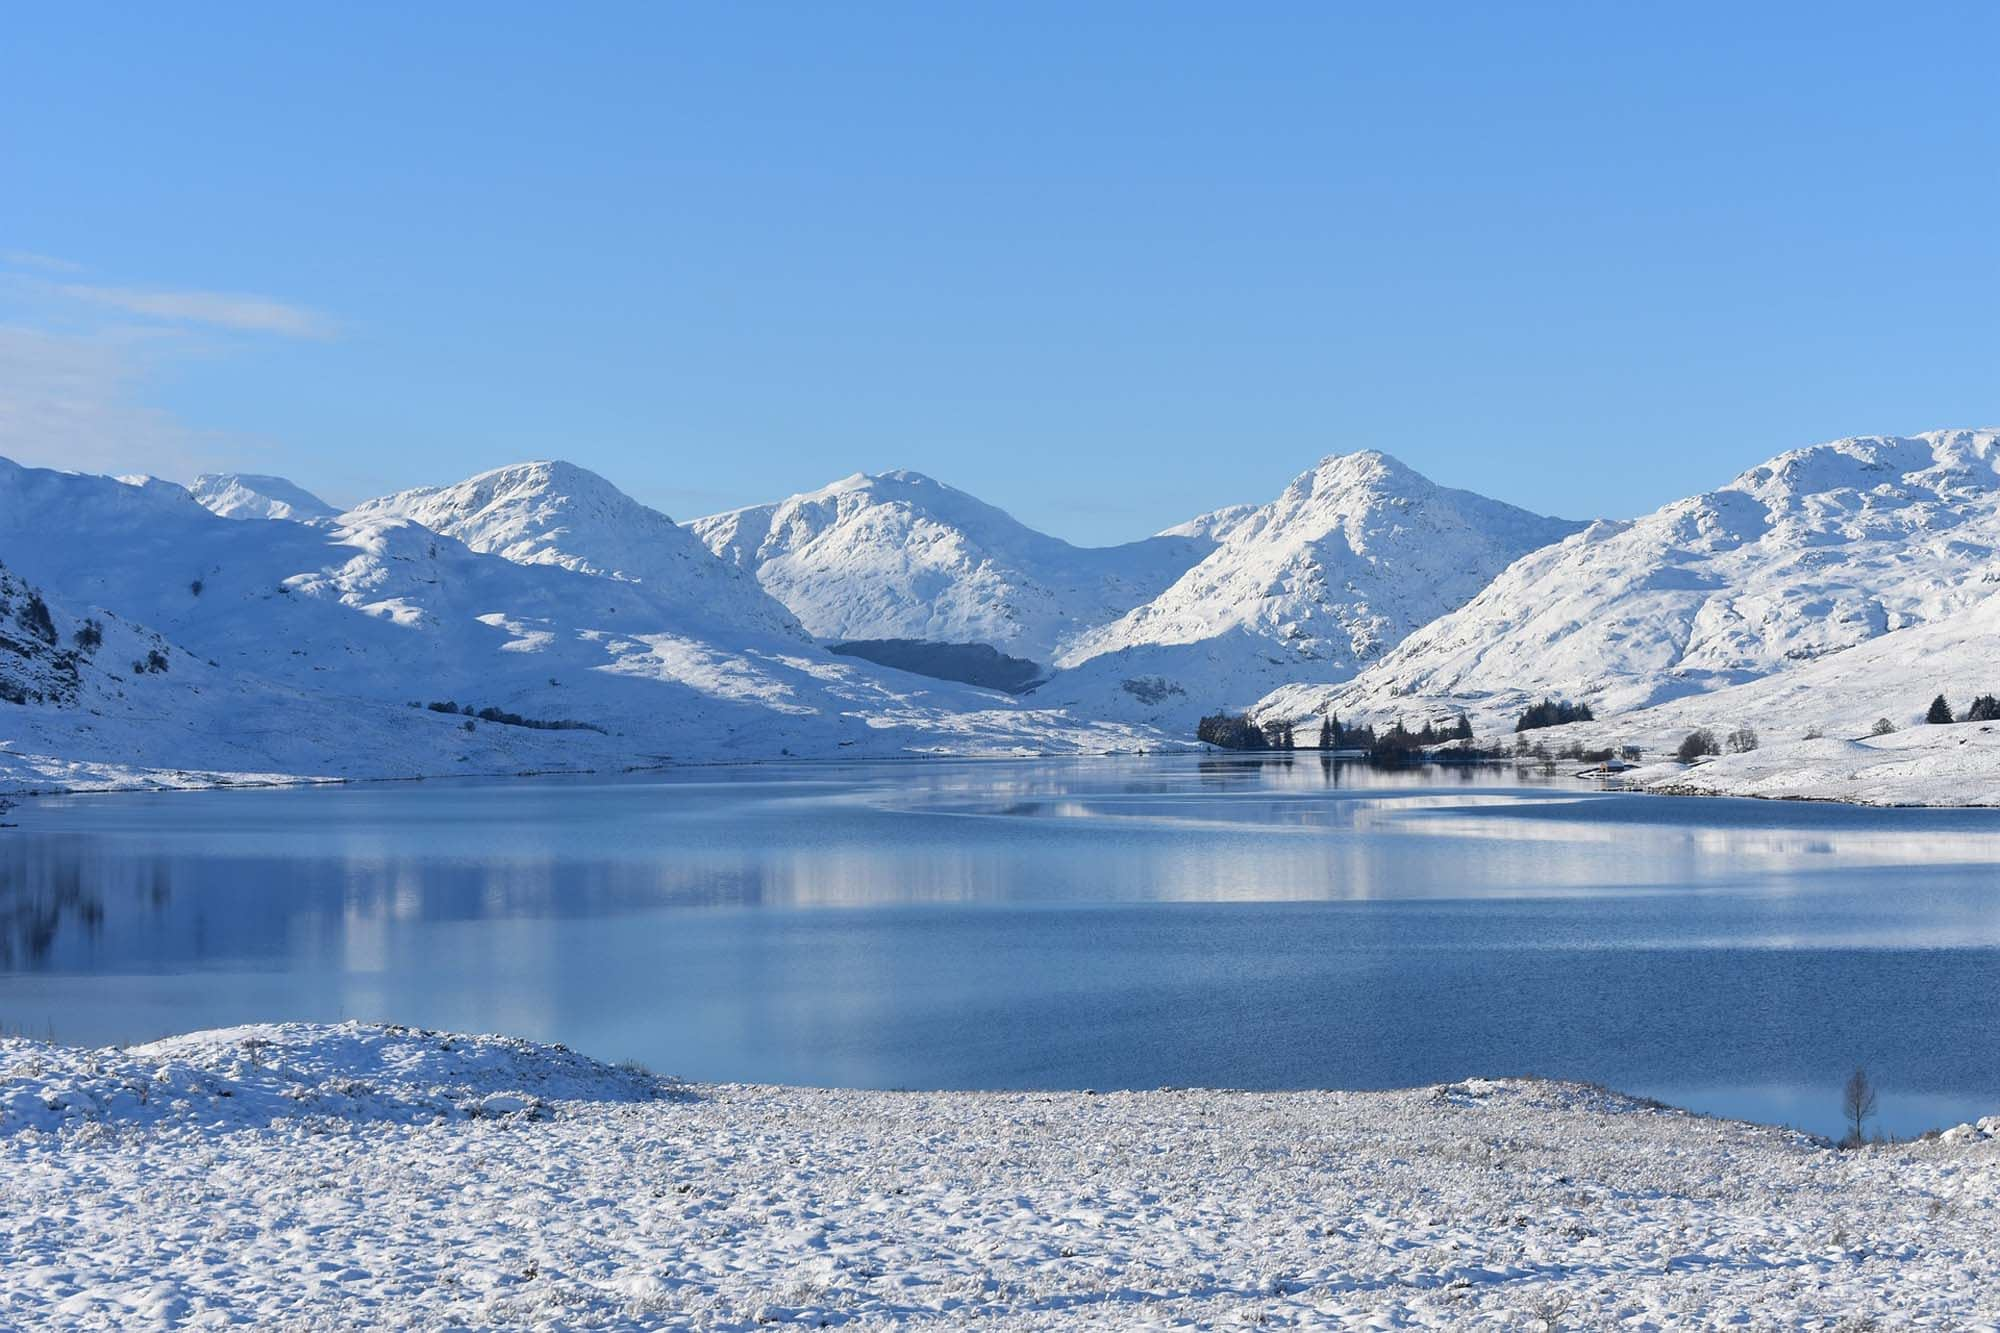 The scottish landscape is perfect for skiing